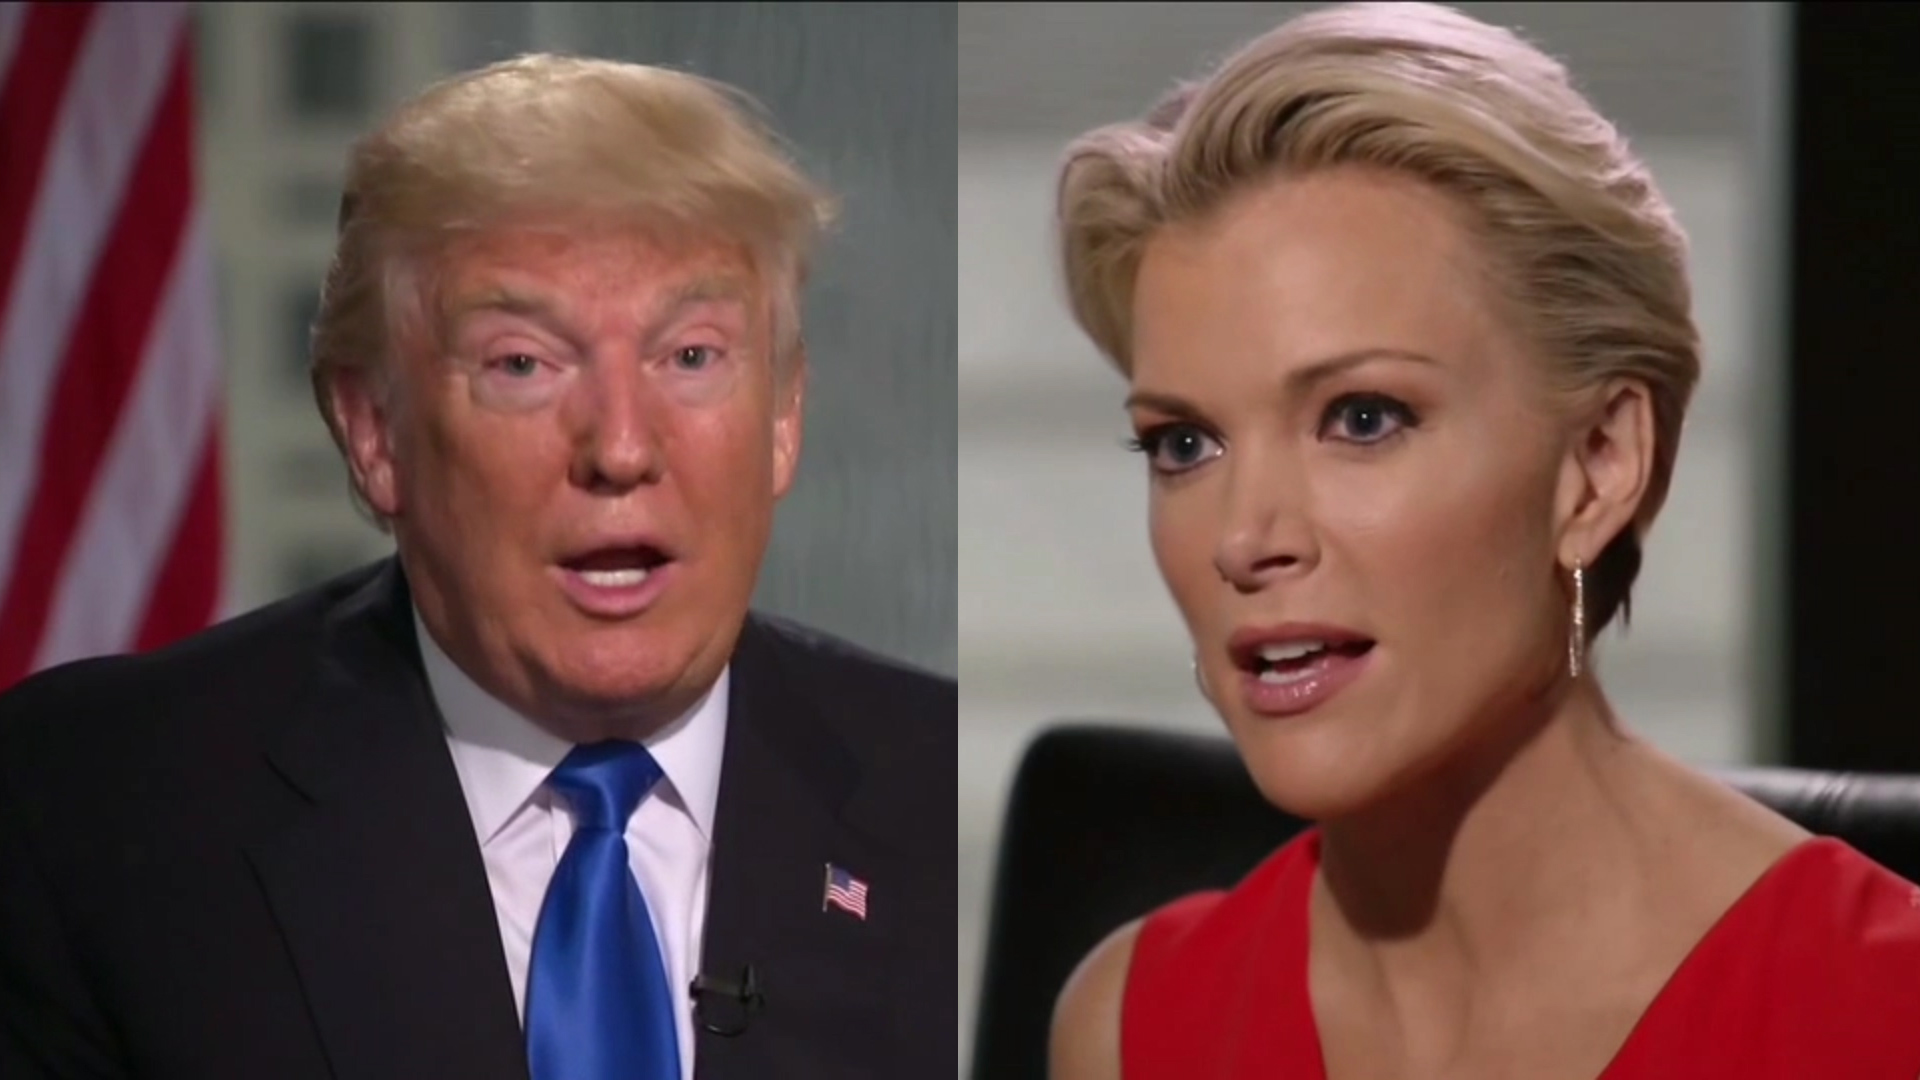 Donald Trump to Megyn Kelly: I'm sorry not sorry